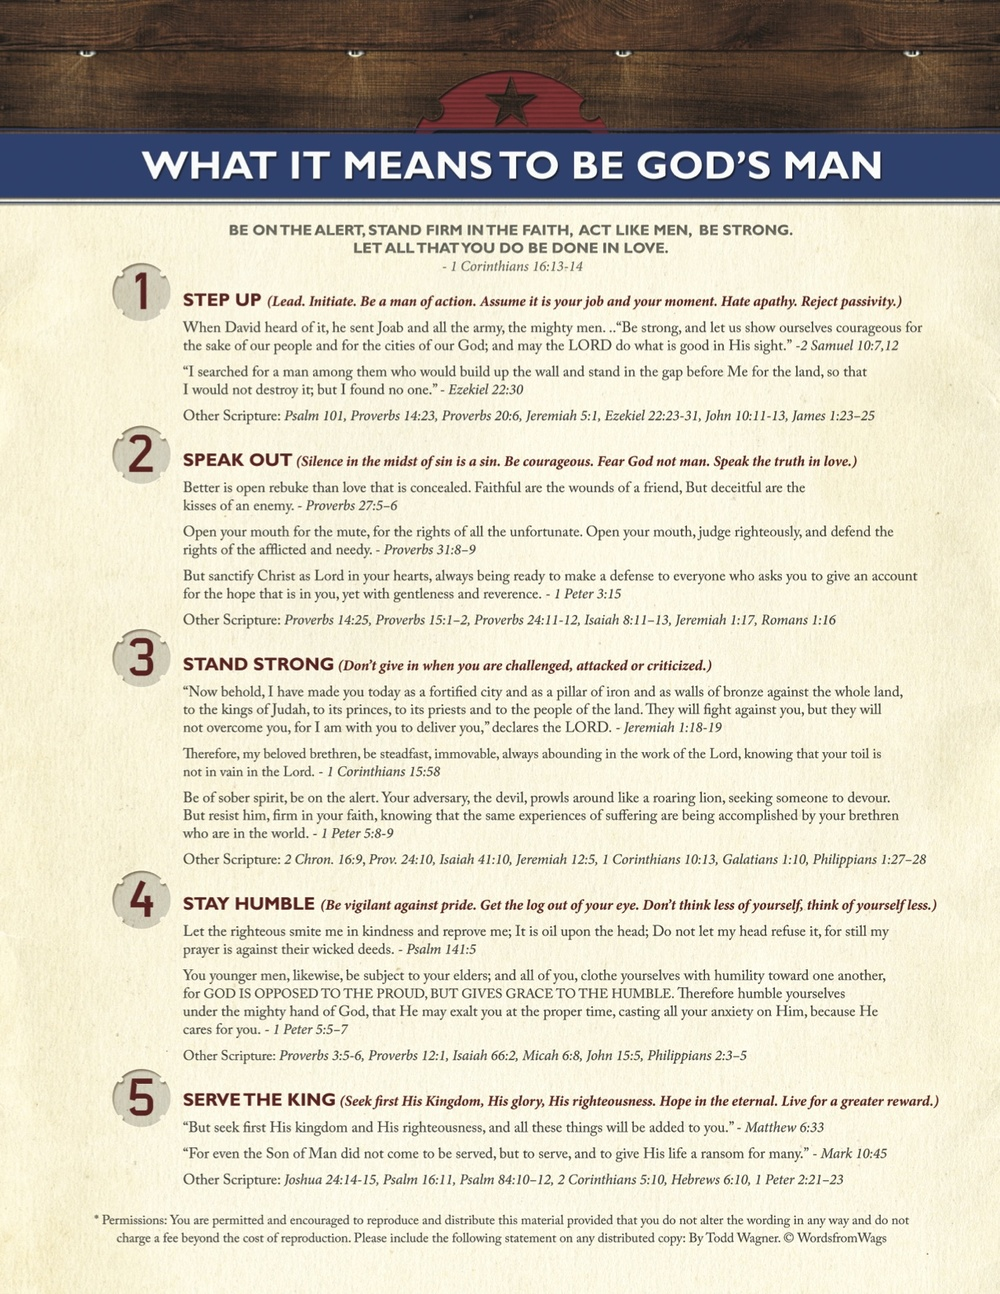 5 Characteristics of a Godly Man